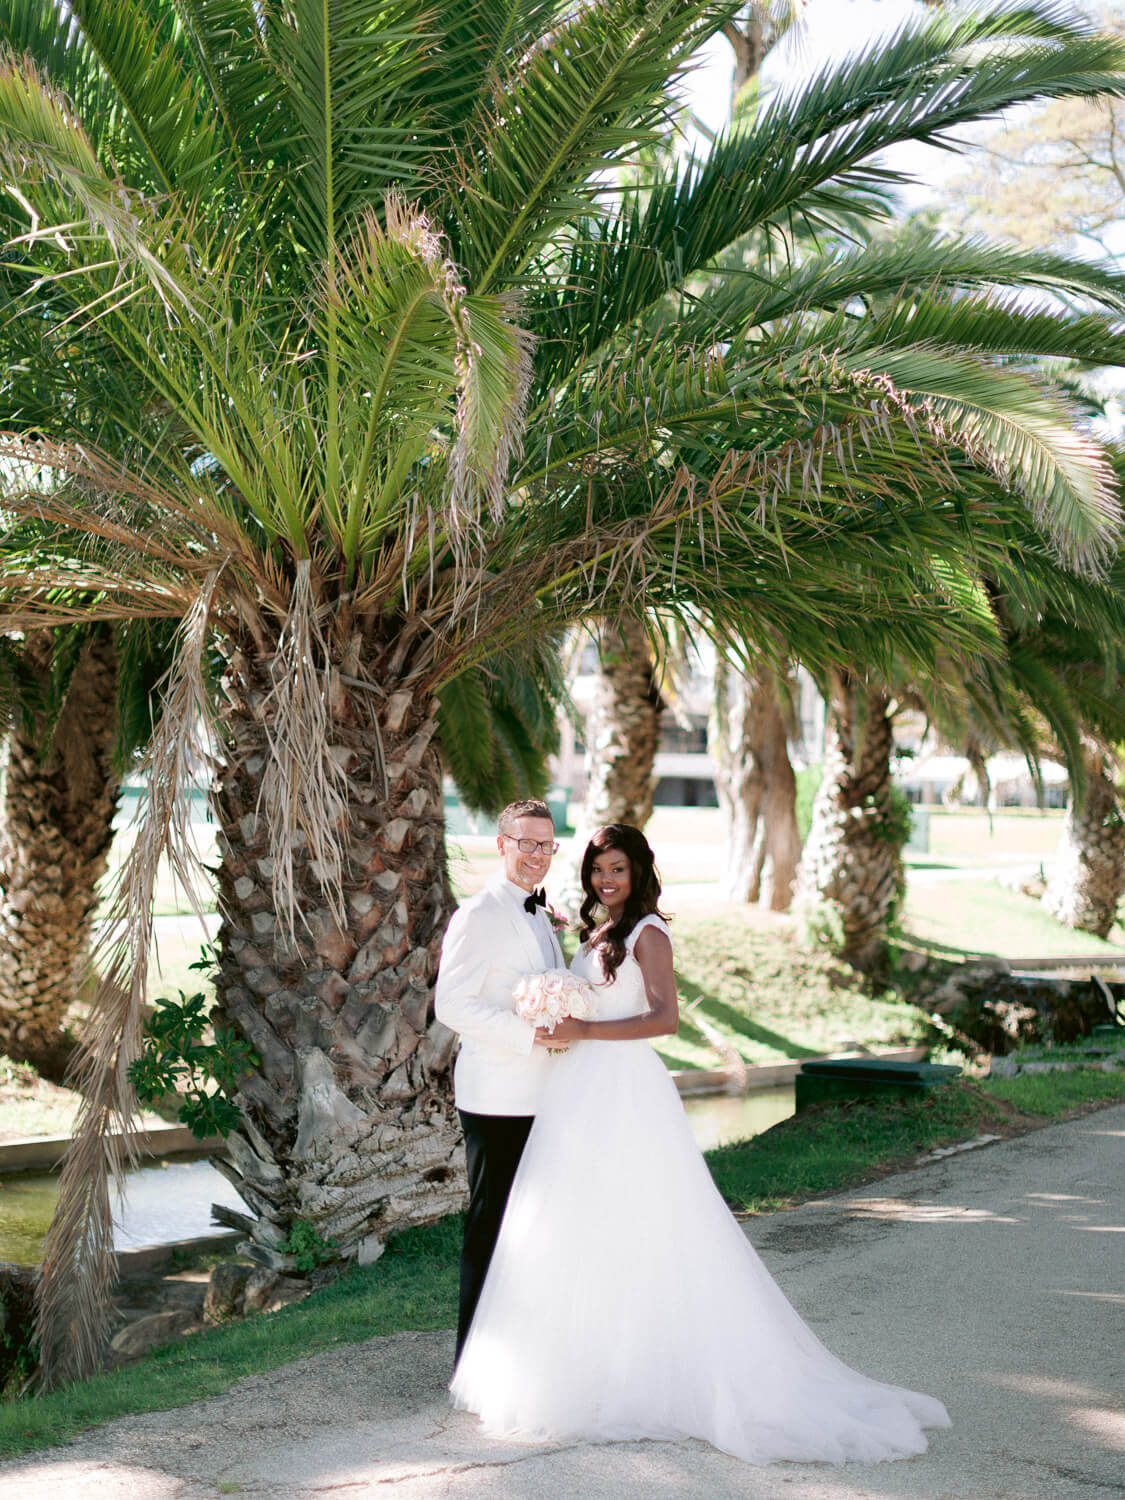 newlyweds under a palm tree after the wedding ceremony at Hotel Palacio Estoril by Portugal Wedding Photographer